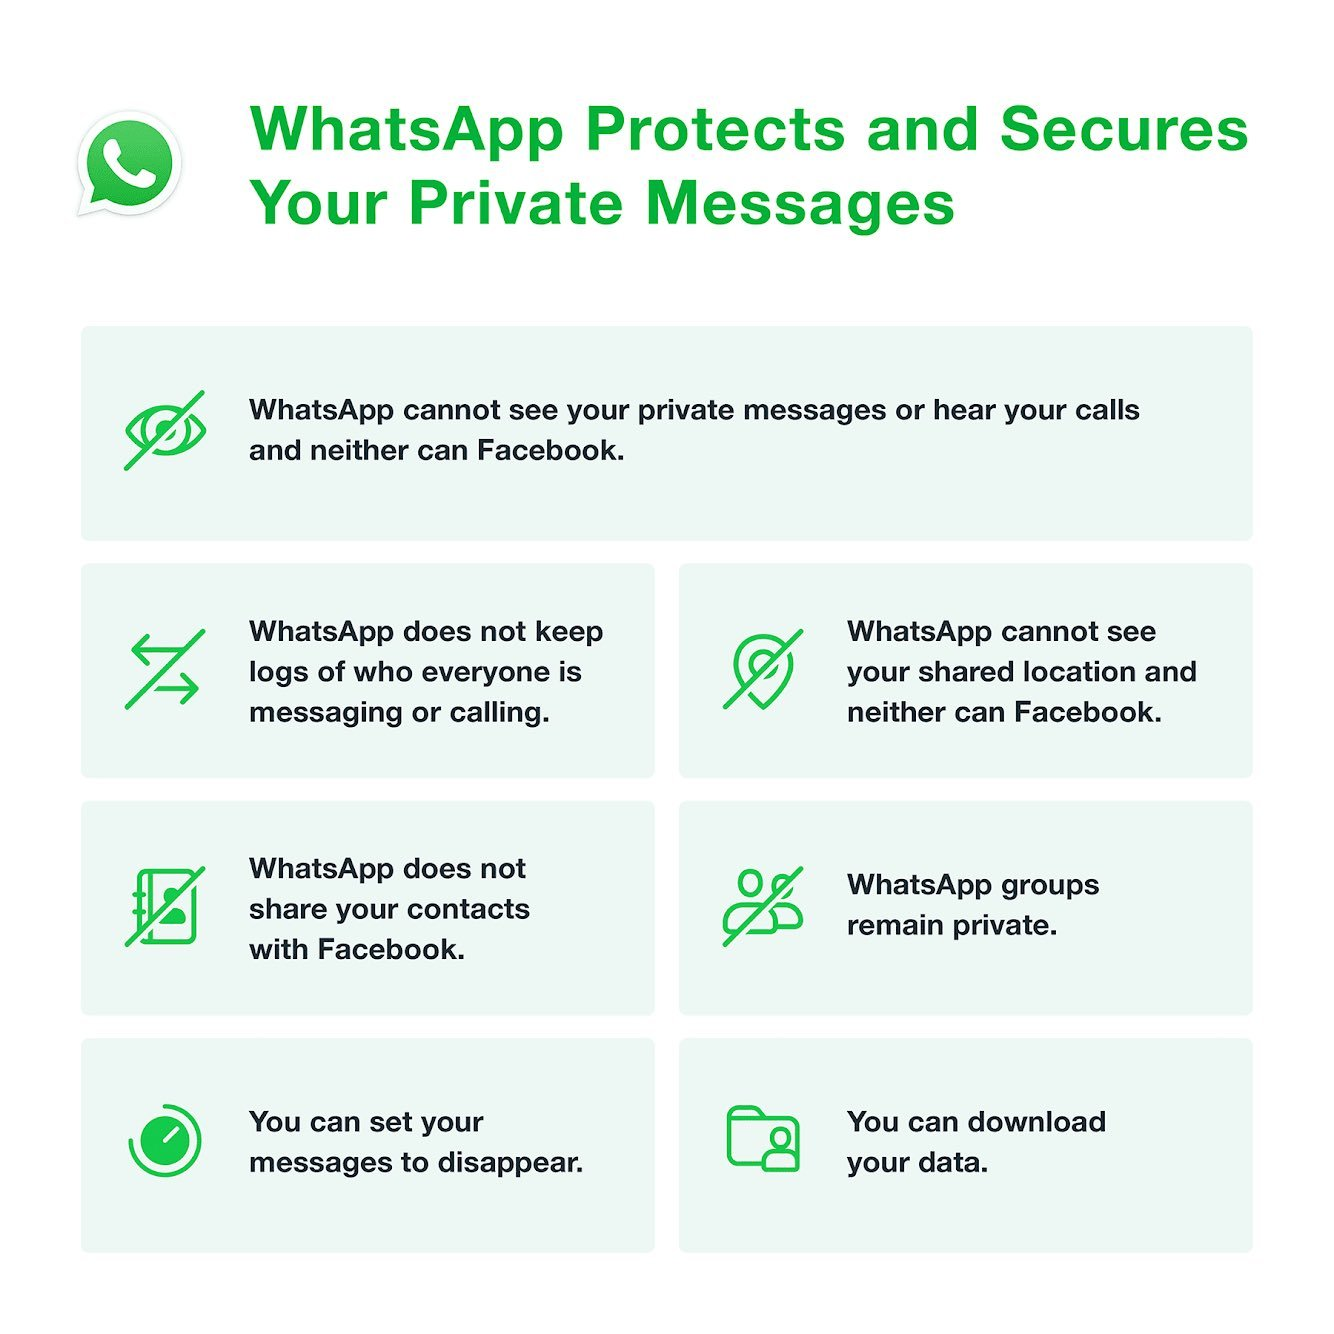 7dfd5b2464d79ceb84ddaceae437b92c-13 WhatsApp to customers: 7 reasons your chats are secure after new policy replace